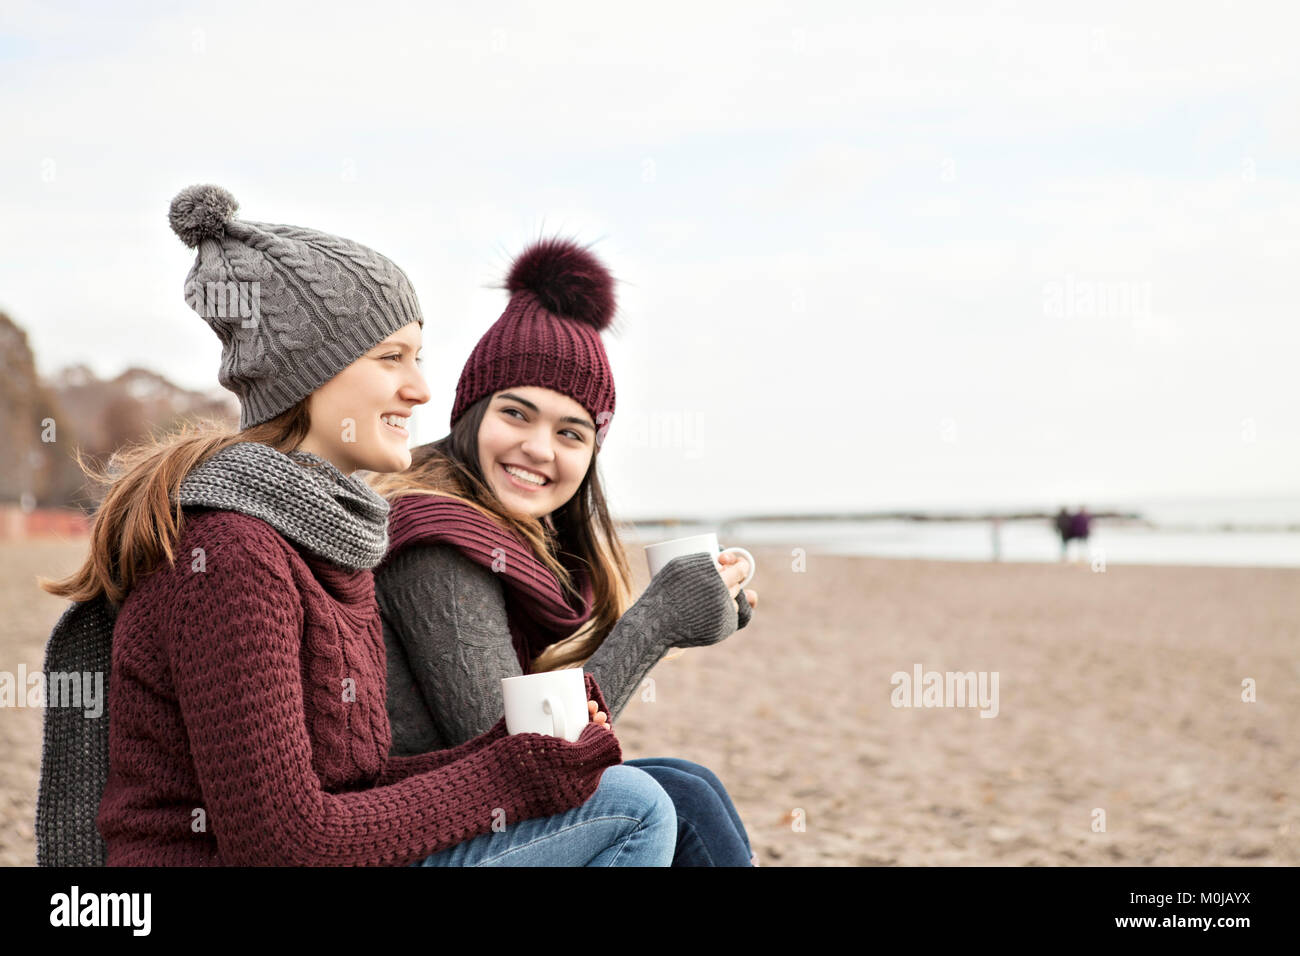 30c4a3a0b69 Two friends at the beach wearing knit hats and scarves, sitting and ...